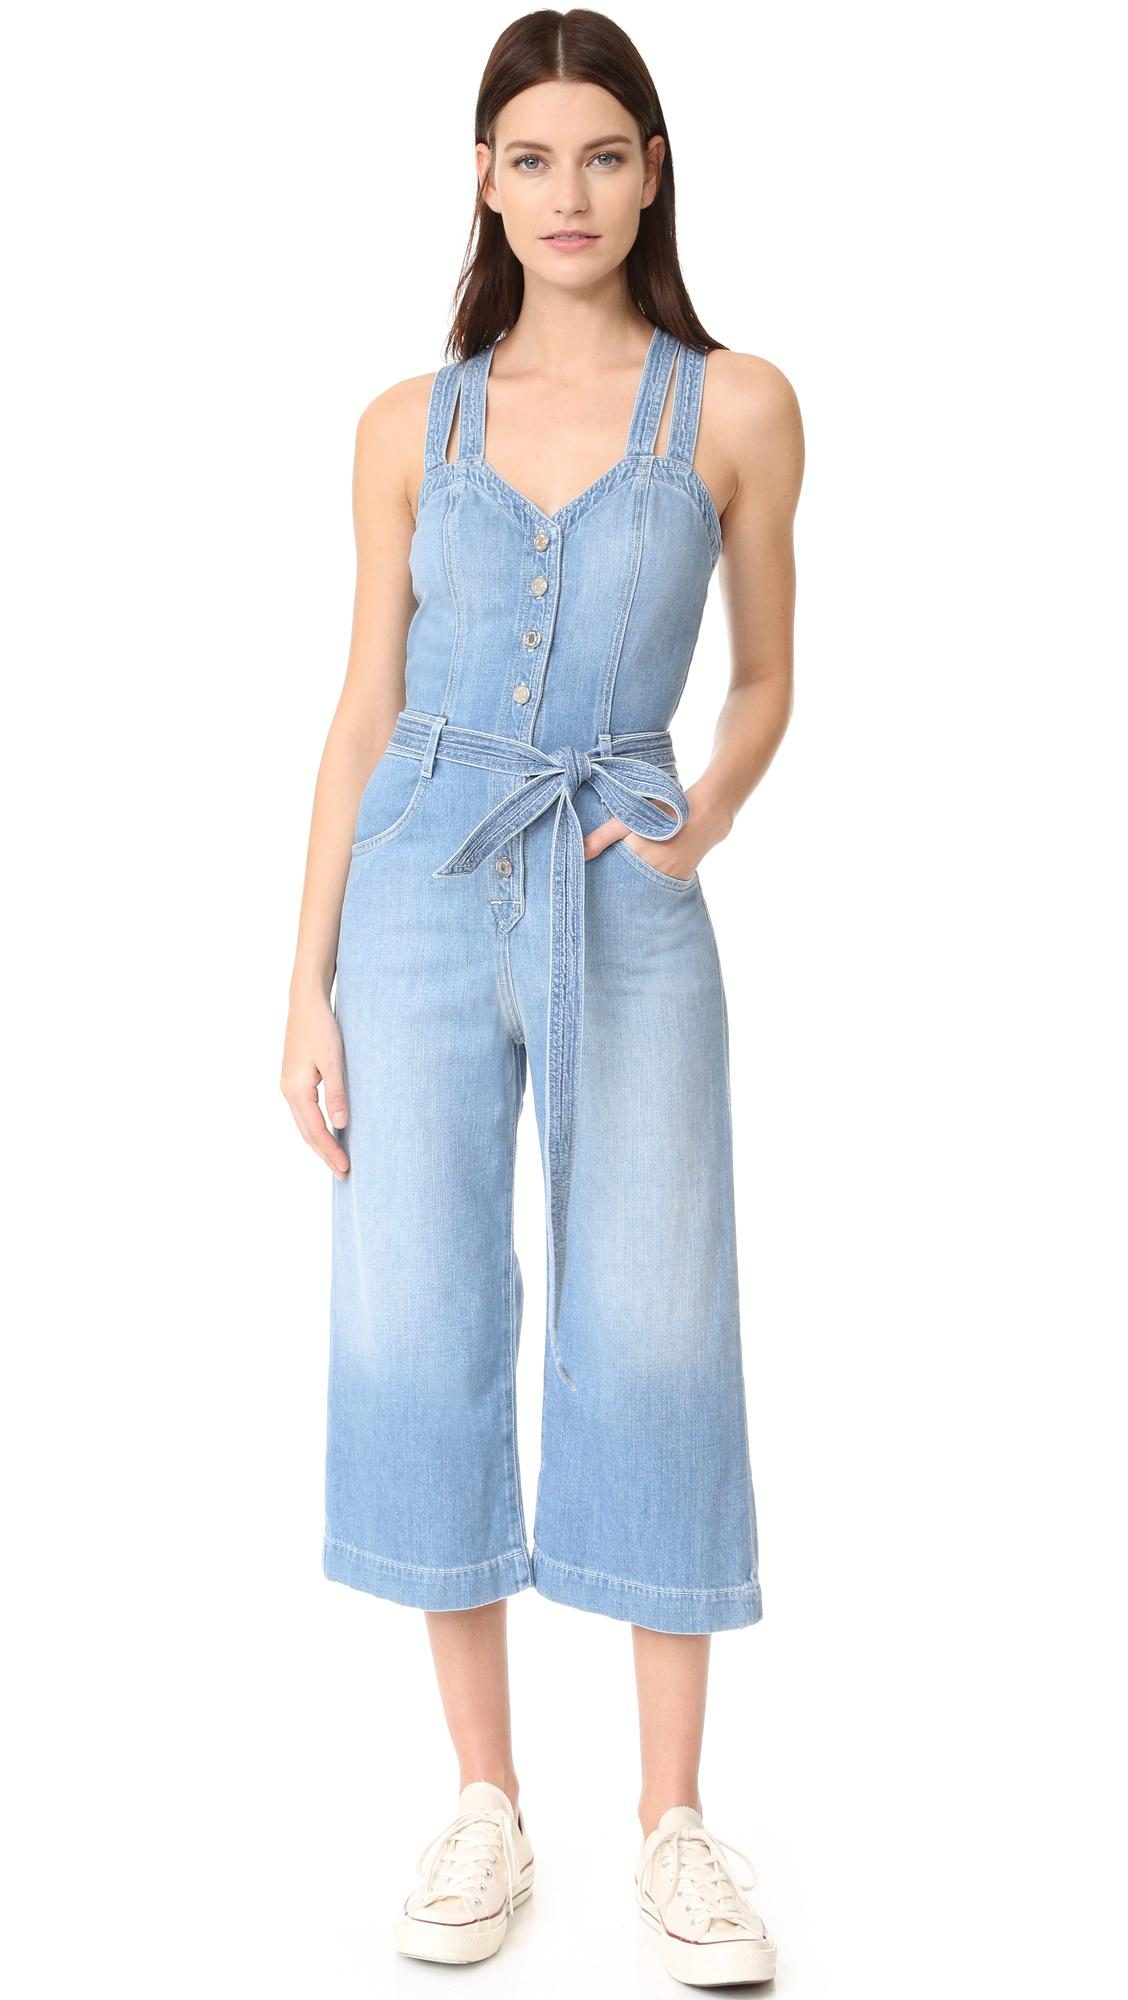 b0e9ab0af0f Lyst - 7 For All Mankind Culotte Jumpsuit in Blue